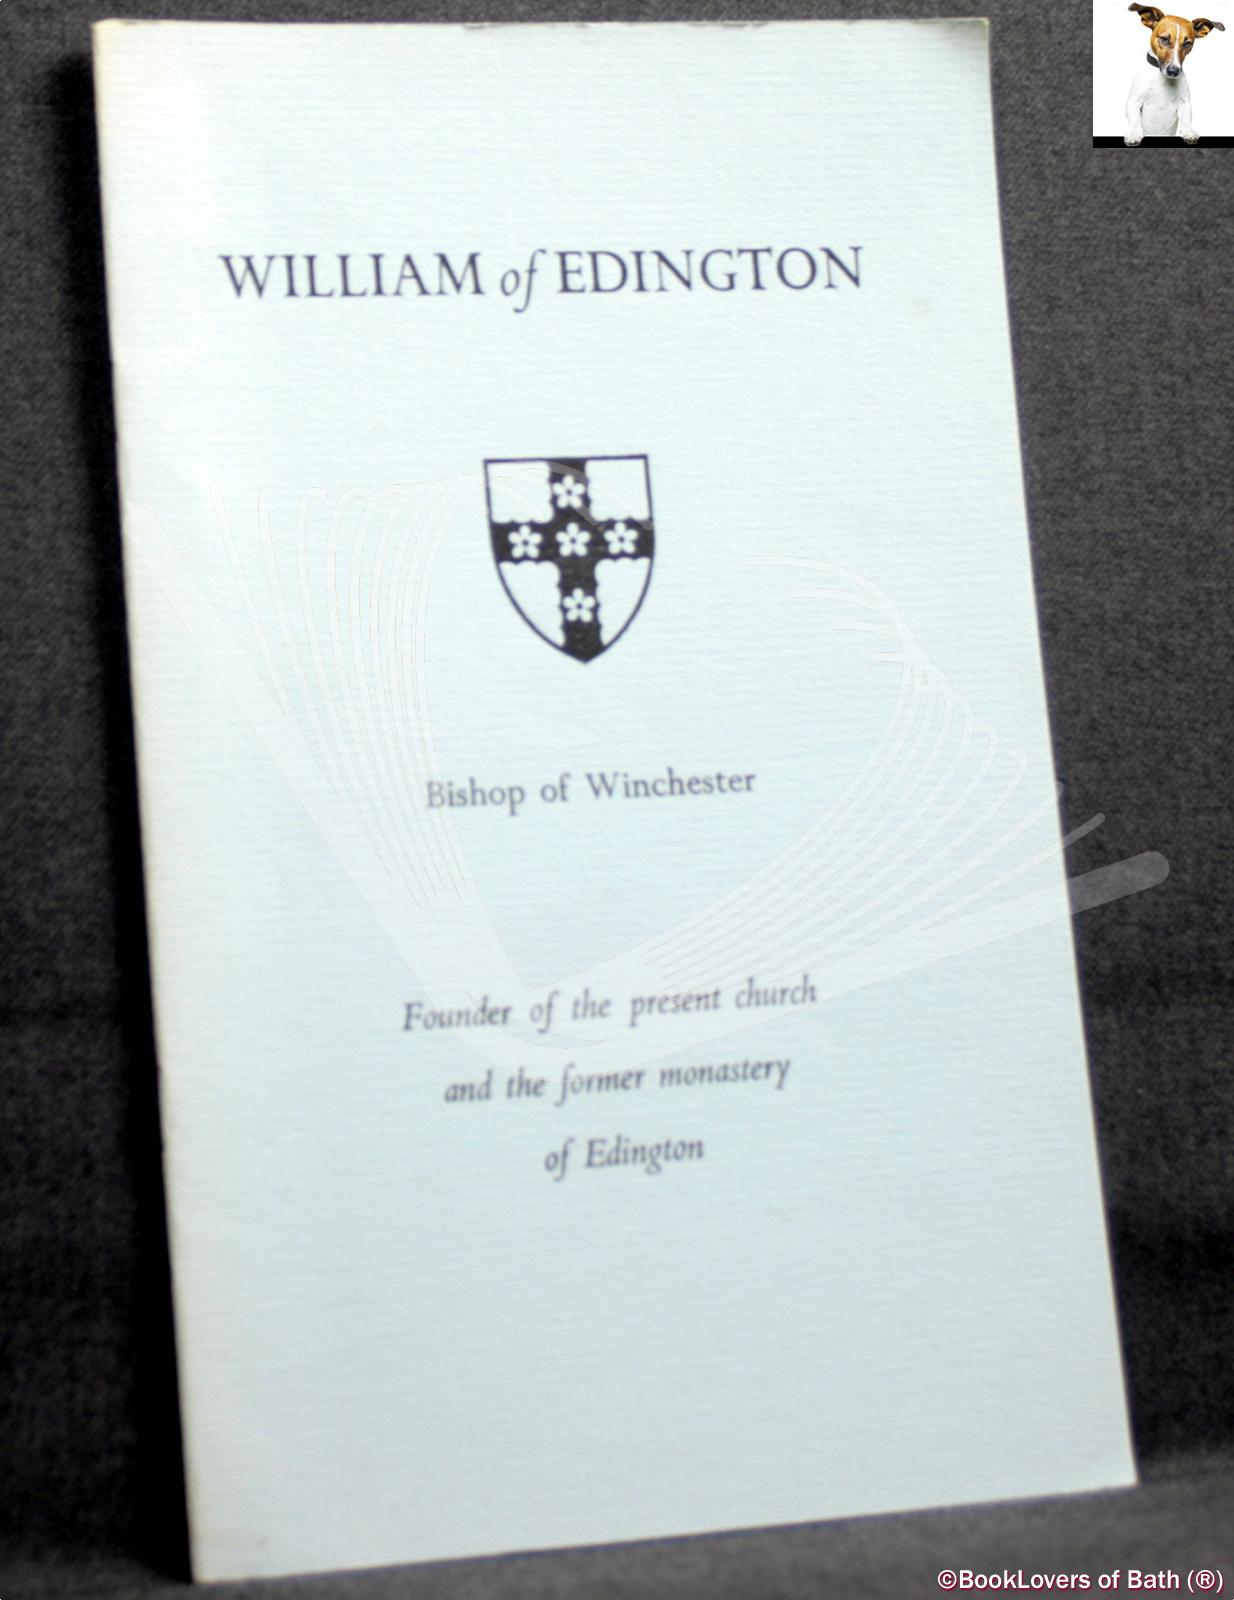 William of Edington: A Lecture Given At the Friends' Festival, 1962 - J. R. L. [John Roger Loxdale] Highfield